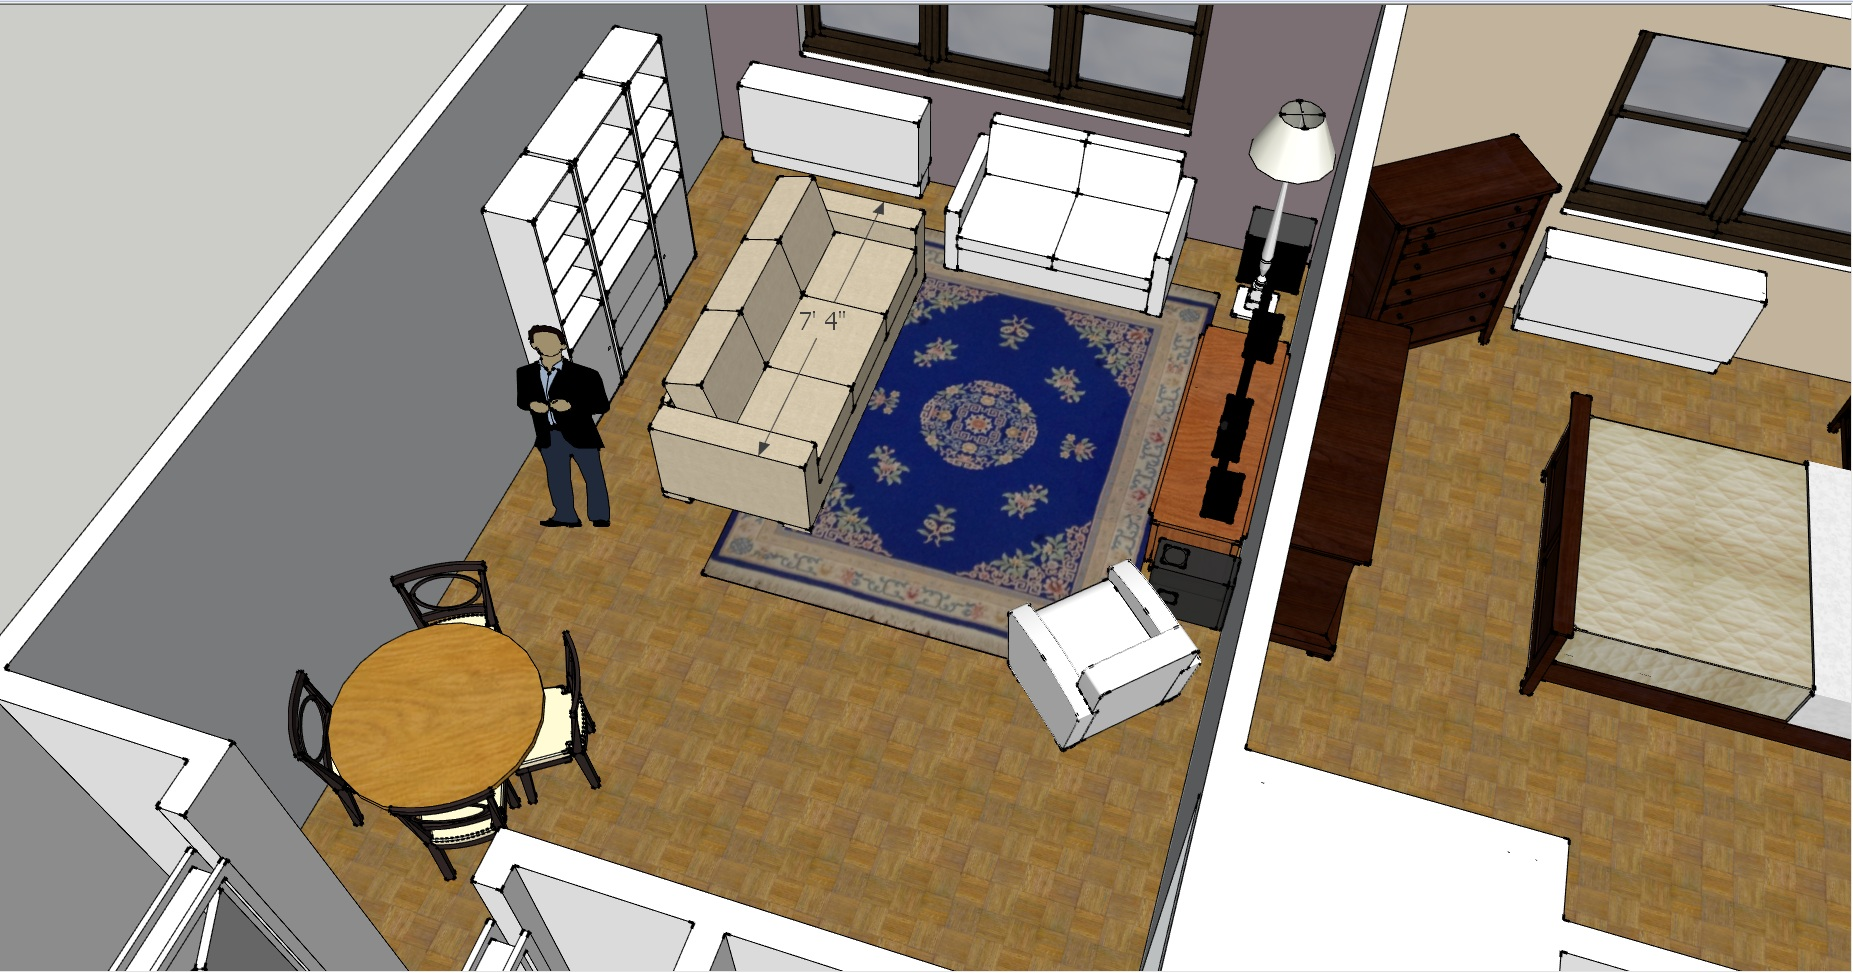 Help what to do with my living room design challenge for Help with living room layout